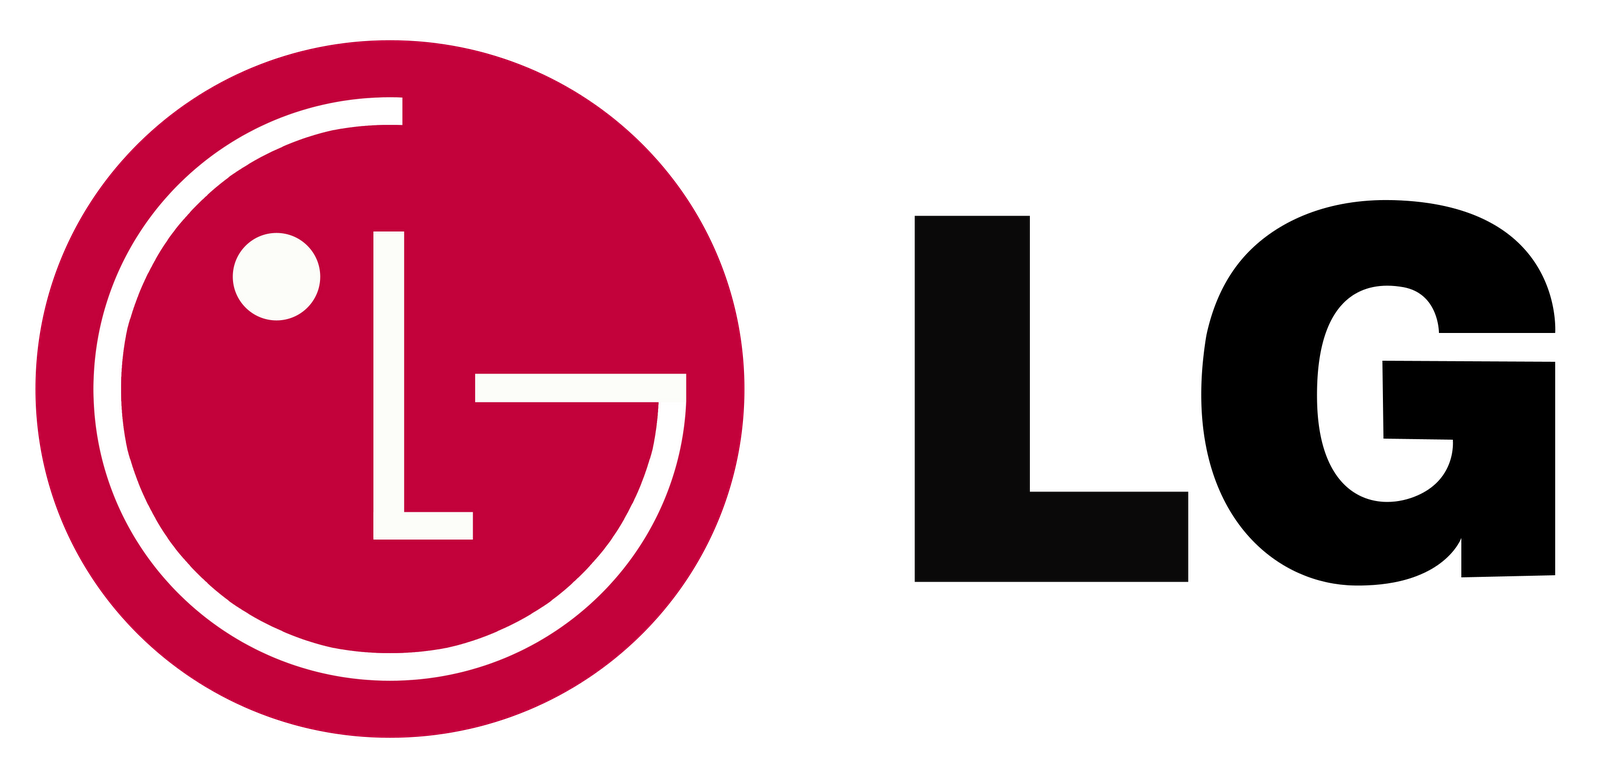 Free download of Lg PNG Picture